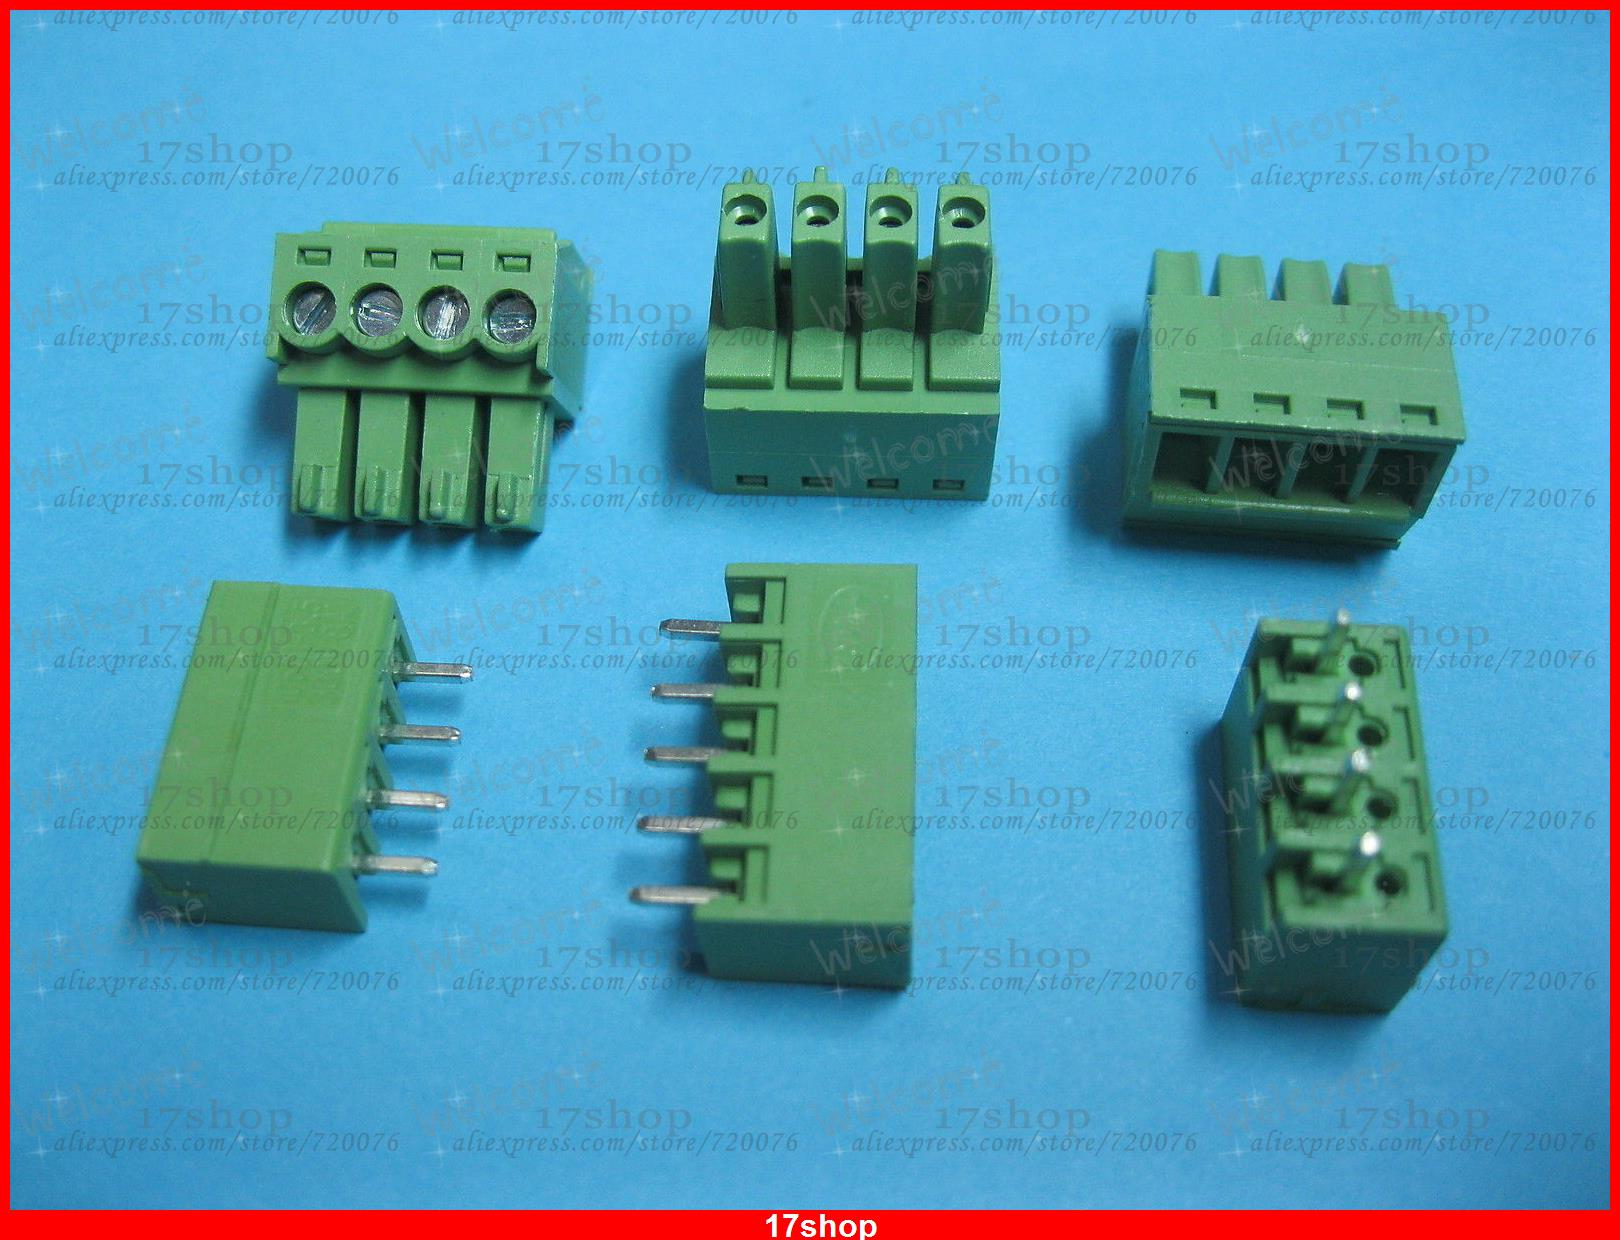 200 x Pitch 3.81mm 4way/pin Screw Terminal Block Connector Green Pluggable Type<br><br>Aliexpress